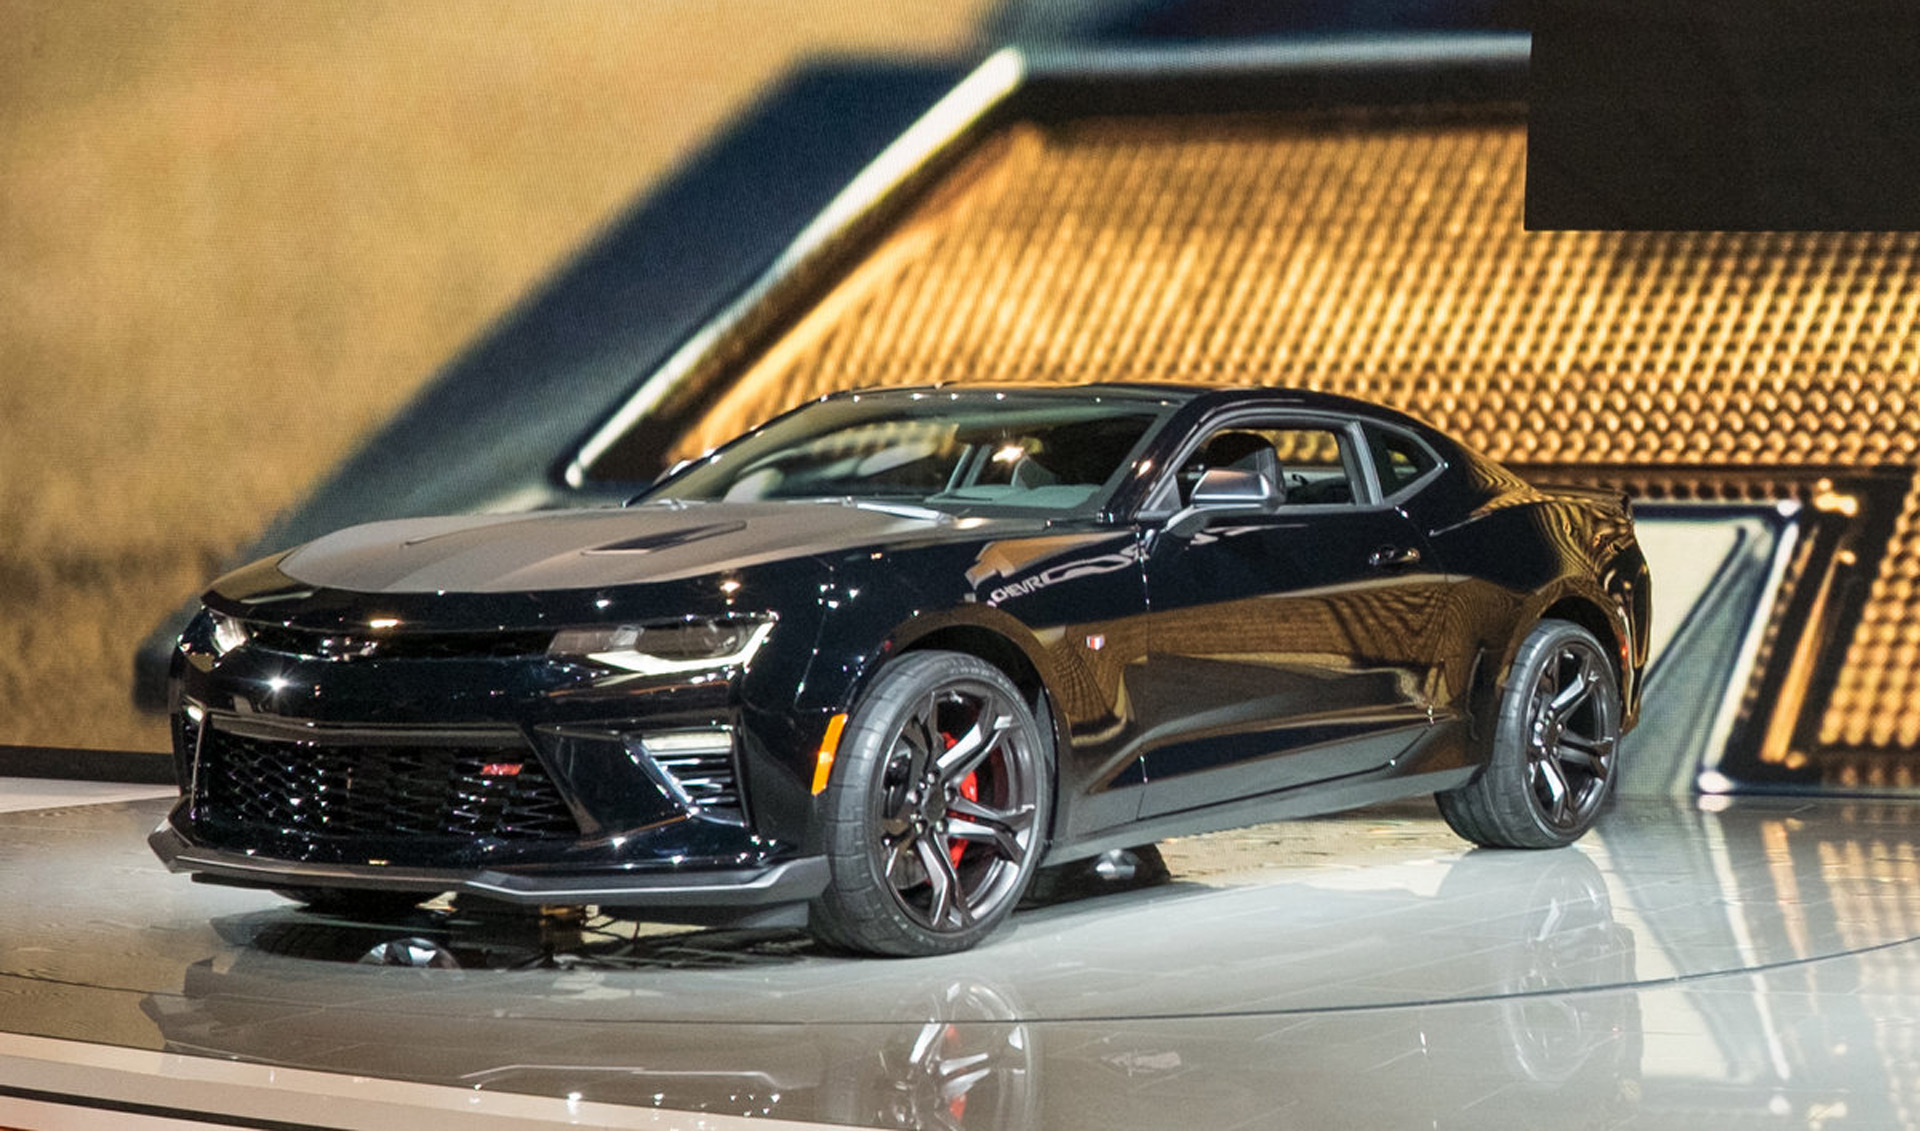 hight resolution of 2017 chevrolet camaro 1le revealed with v 6 and v 8 options live photoschevrolet camaro car